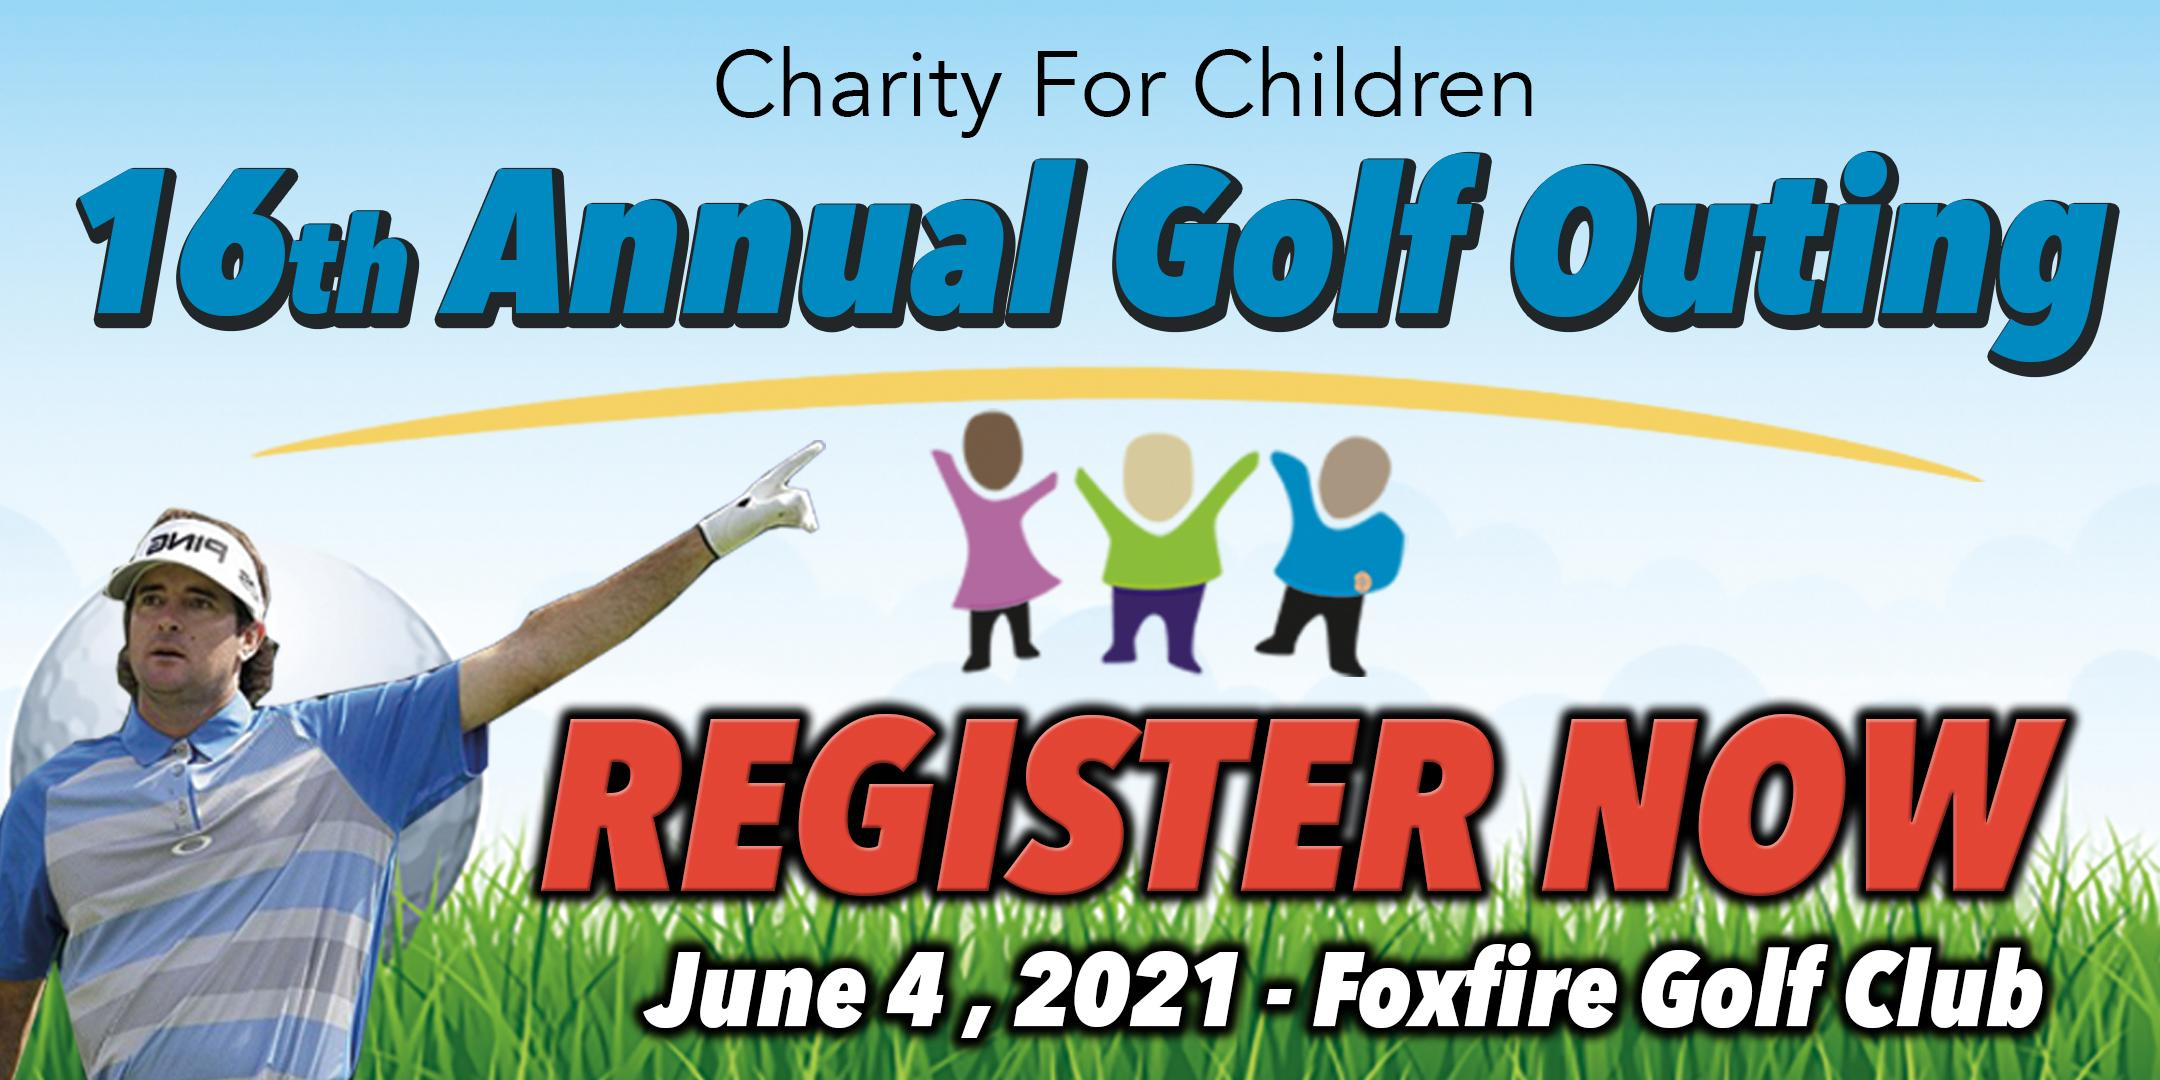 Copy of Charity For Children 16th Annual Golf Outing